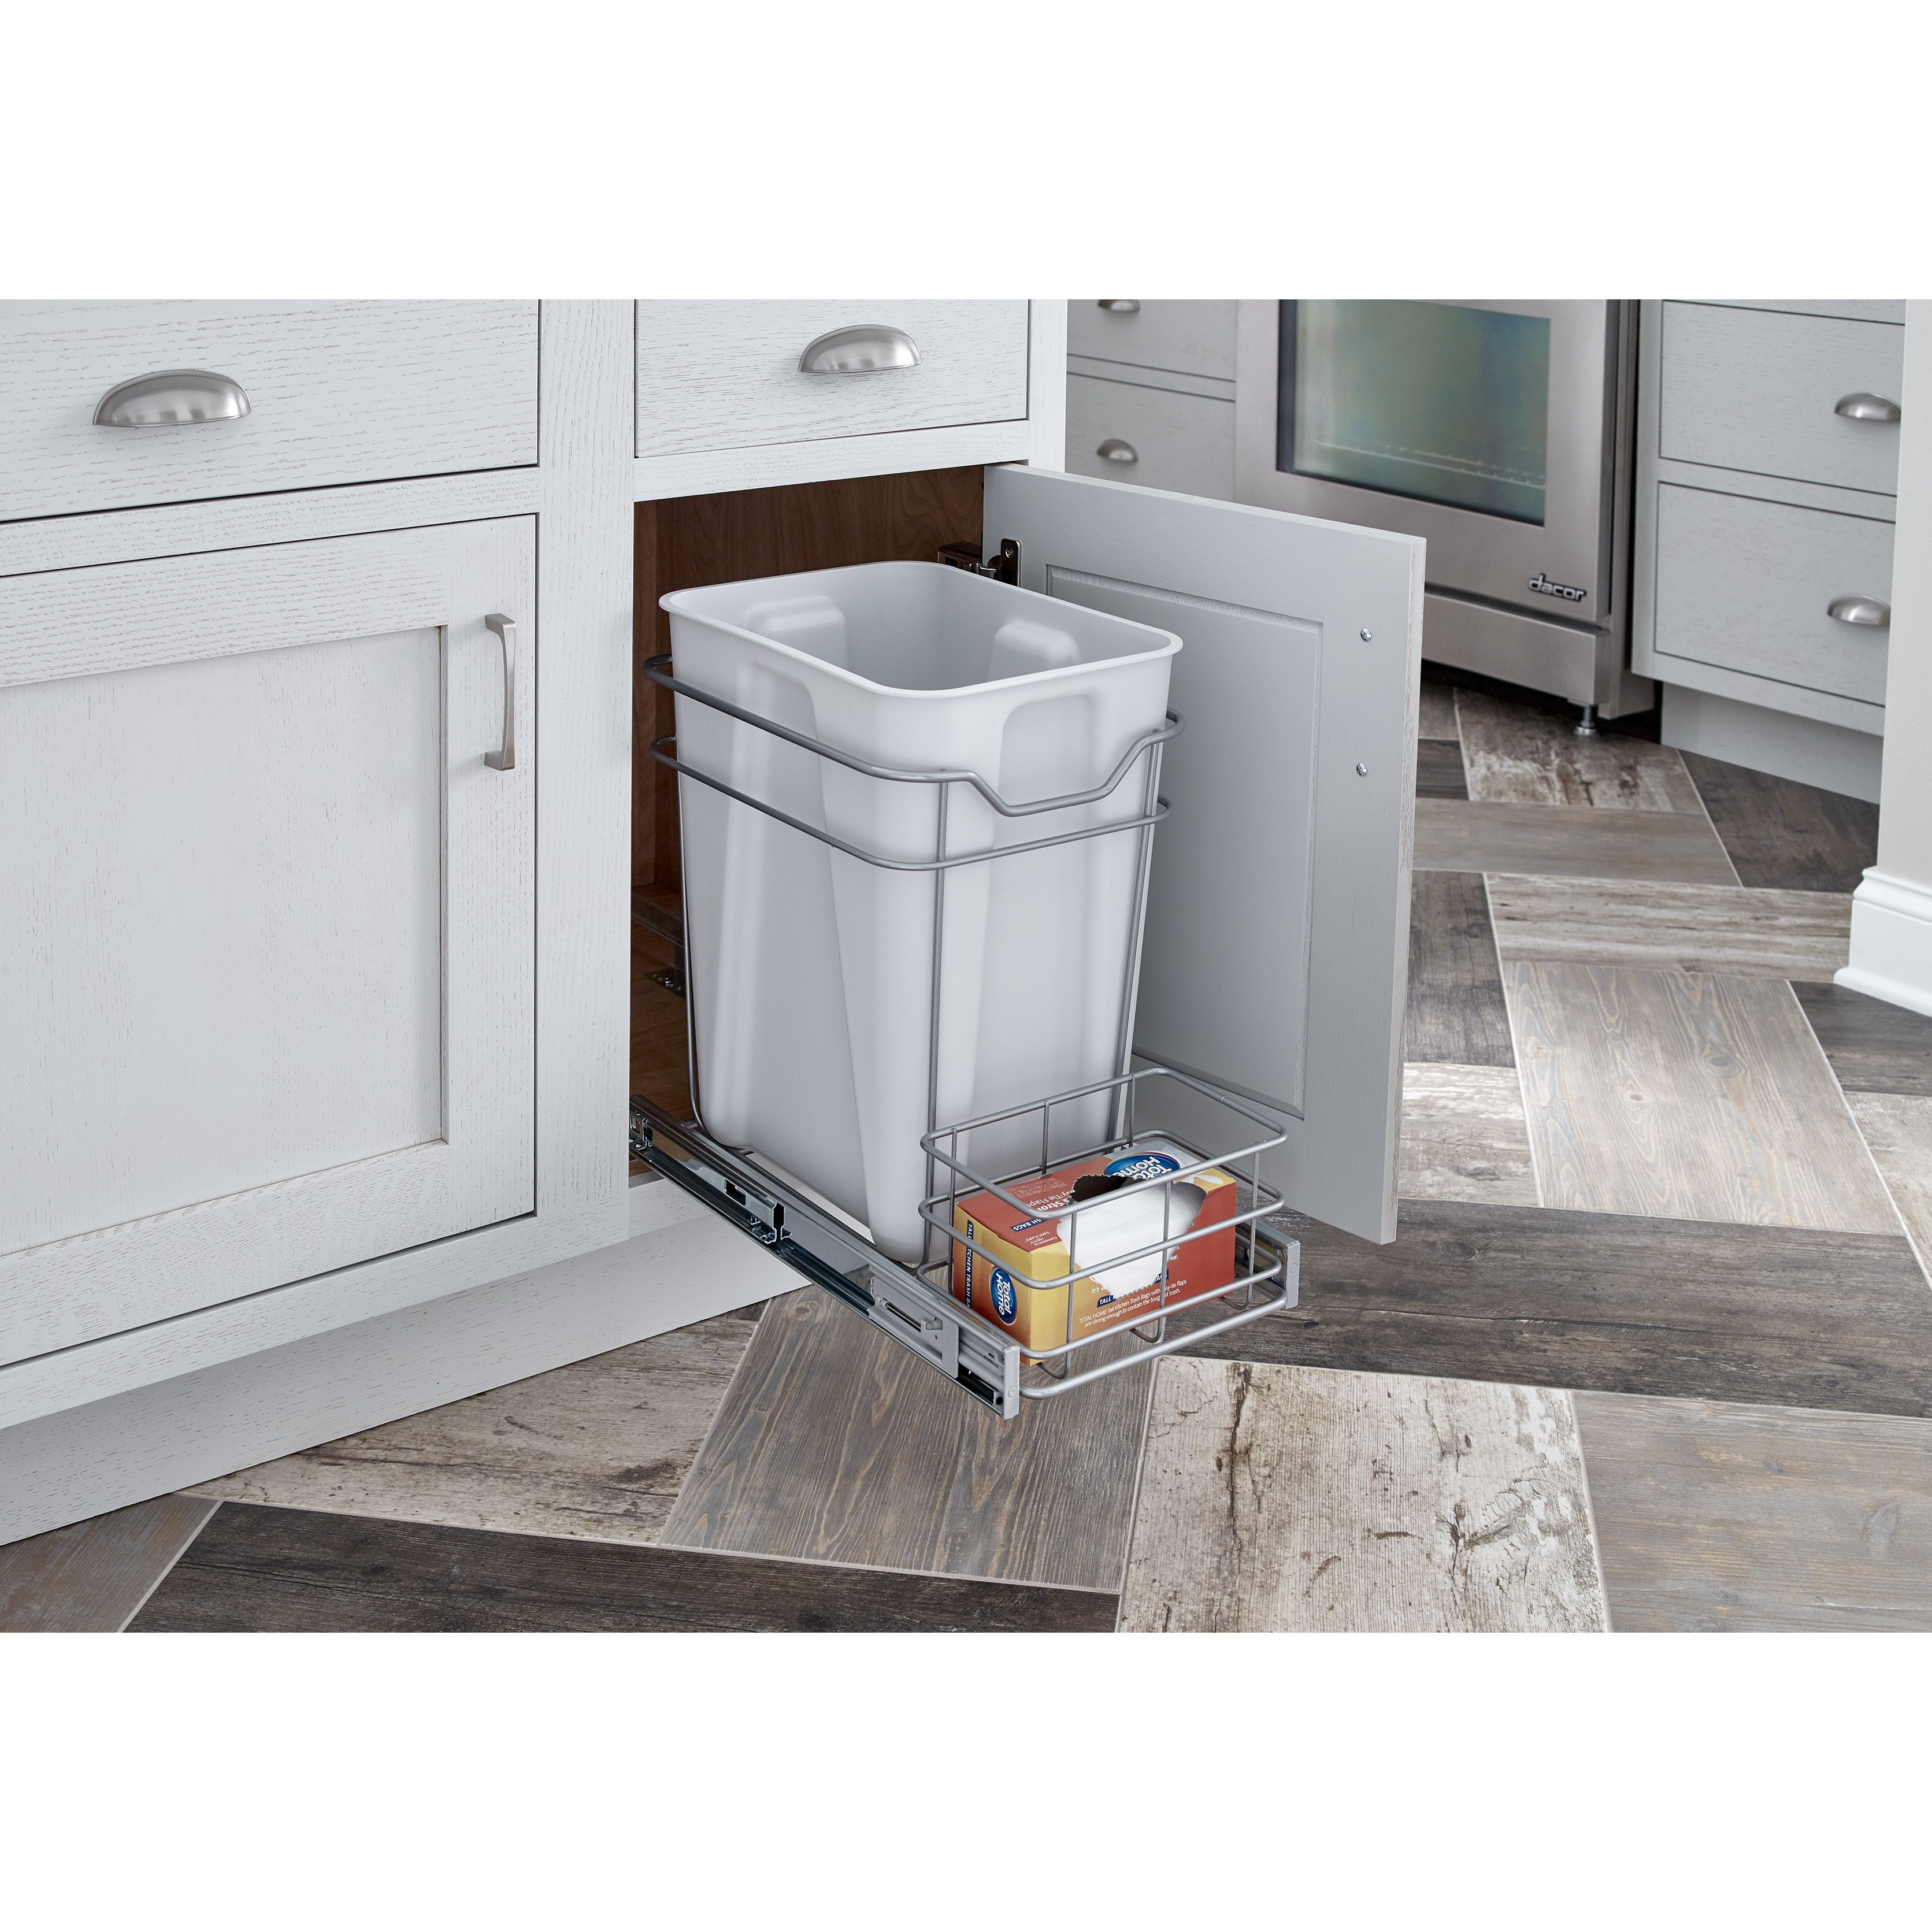 Overstock Com Online Shopping Bedding Furniture Electronics Jewelry Clothing More Kitchen Cabinets Makeover Replacing Kitchen Countertops Cabinets Organization